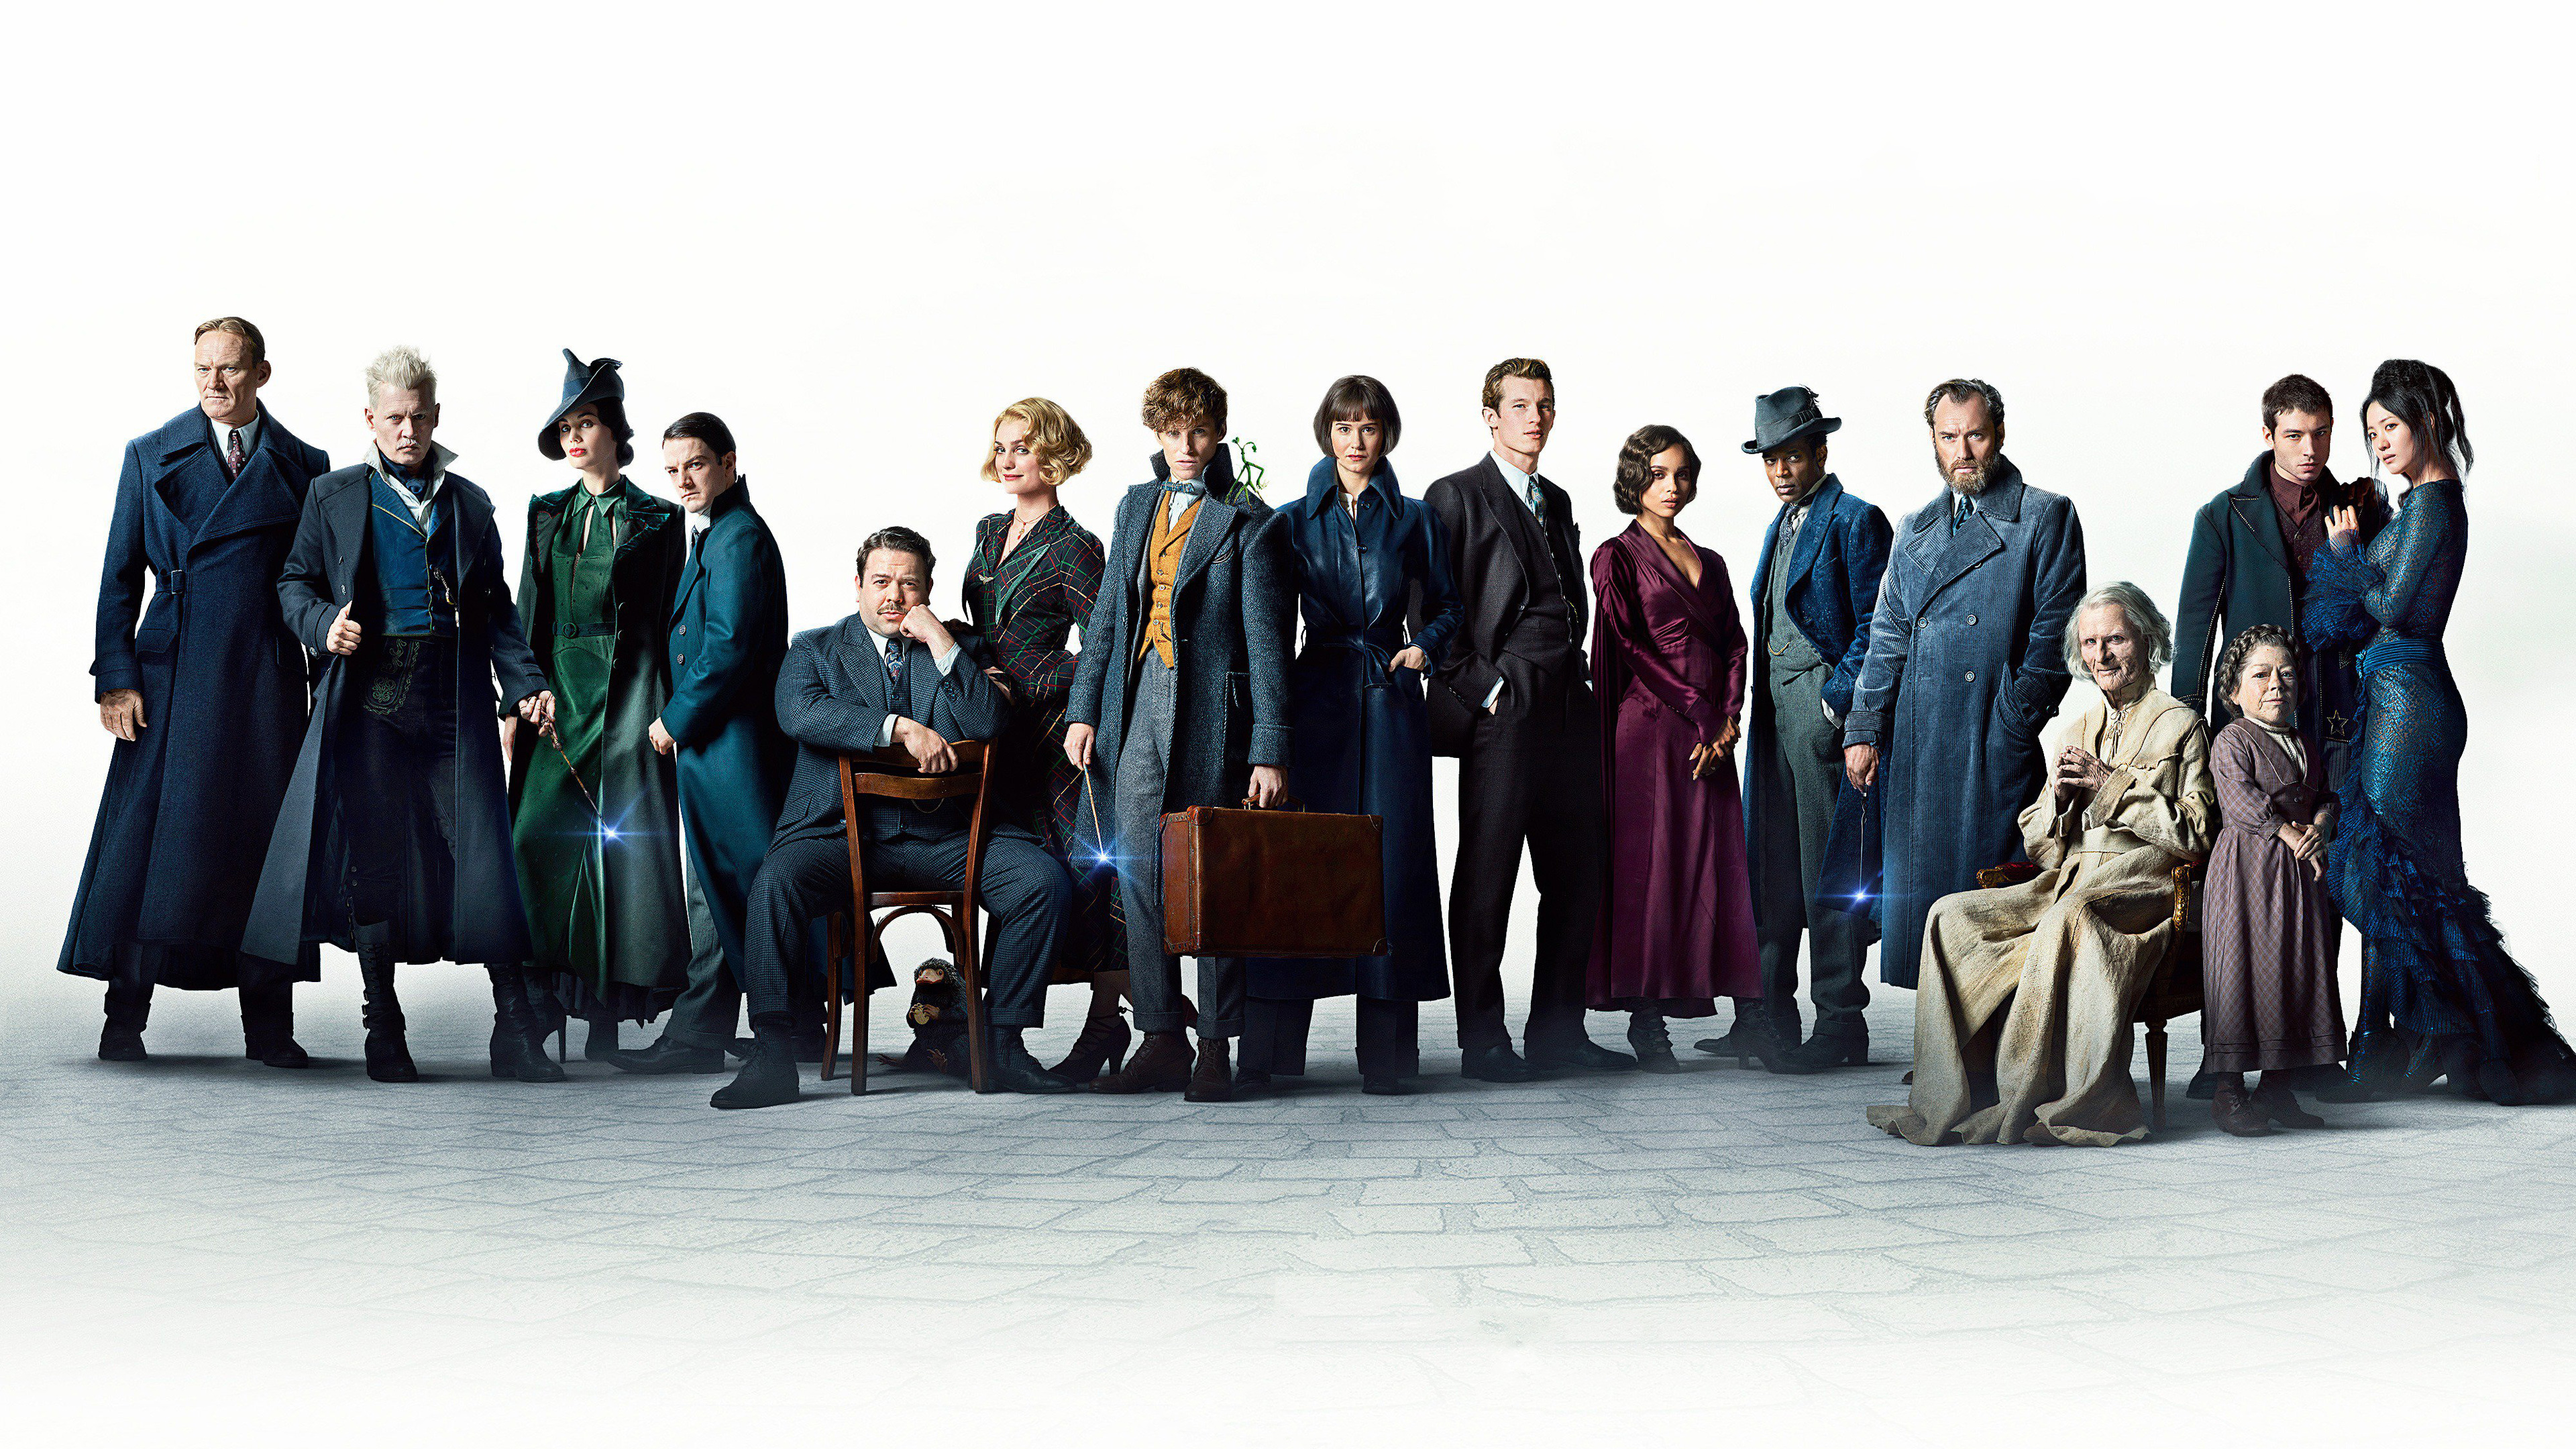 fantastic beasts the crimes of grindelwald 4k 1537644669 - Fantastic Beasts The Crimes Of Grindelwald 4k - poster wallpapers, movies wallpapers, hd-wallpapers, fantastic beasts the crimes of grindelwald wallpapers, fantastic beasts 2 wallpapers, 4k-wallpapers, 2018-movies-wallpapers